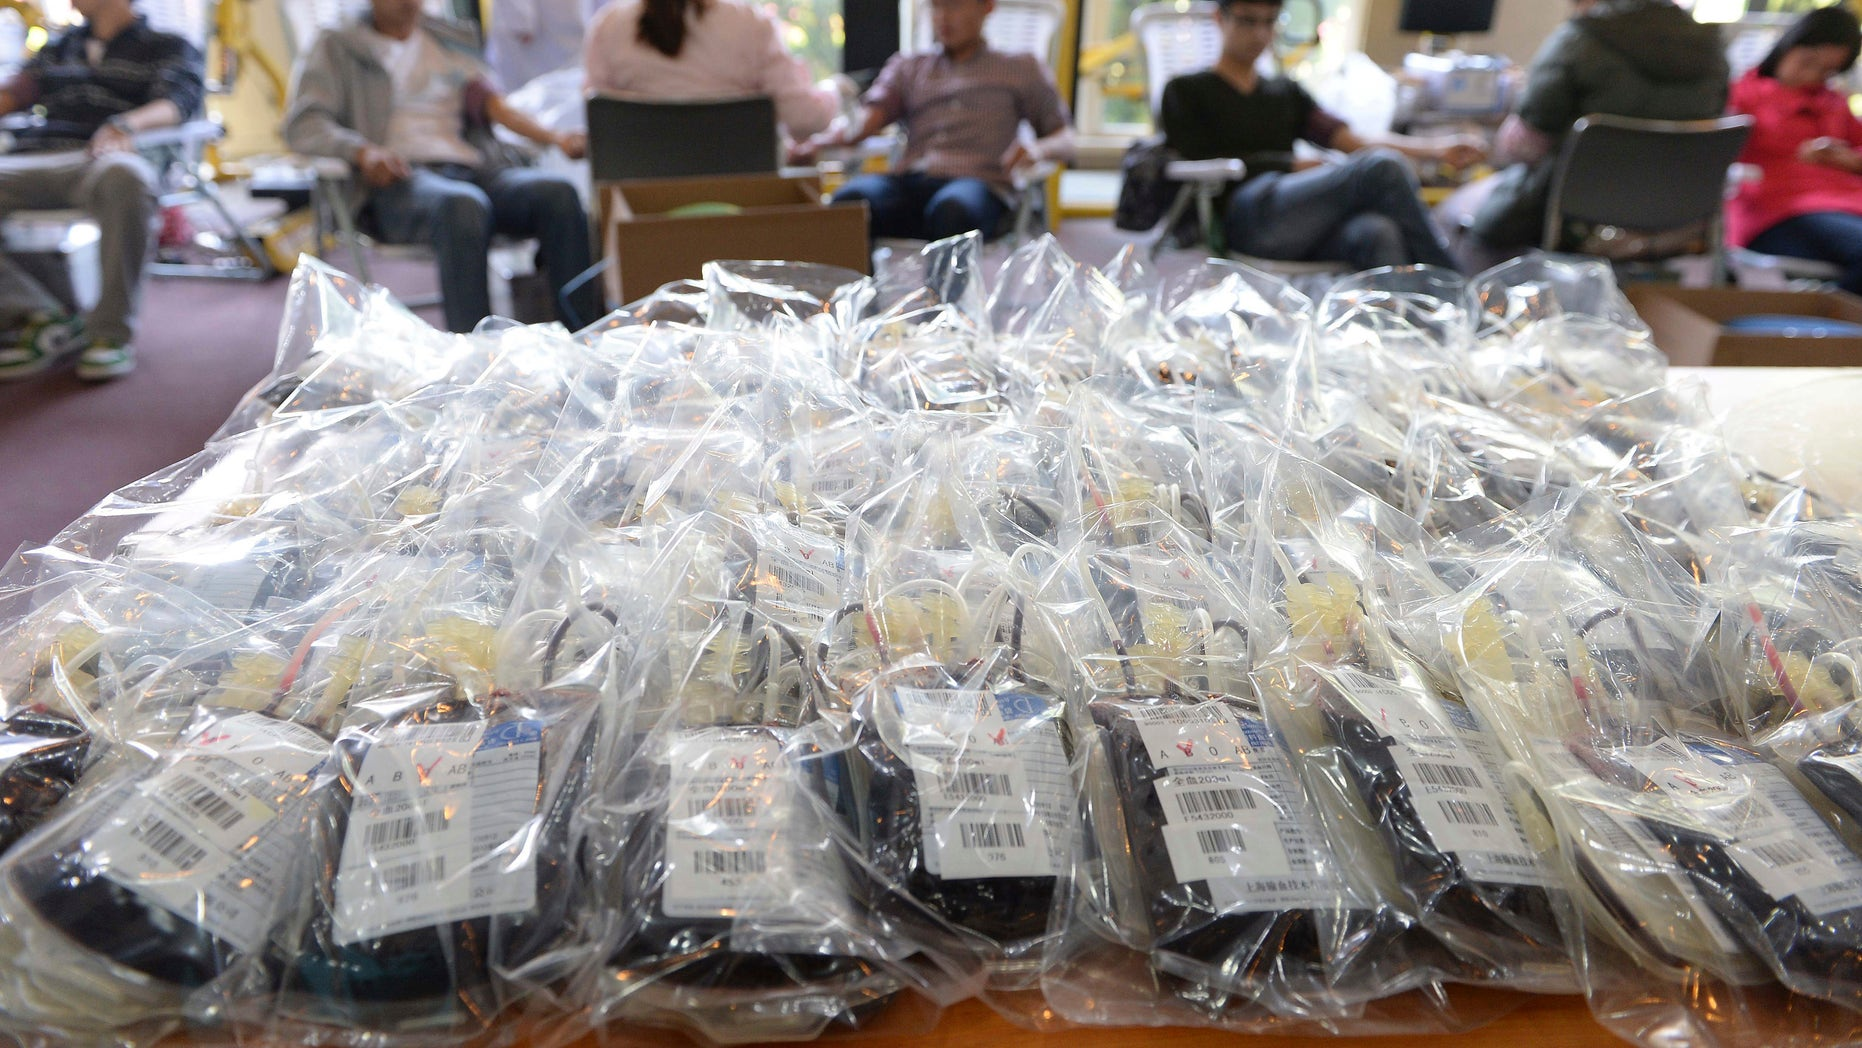 Blood packs, donated by college students, are seen on a table at a hospital in Shanghai, April 23, 2014. REUTERS/Stringer